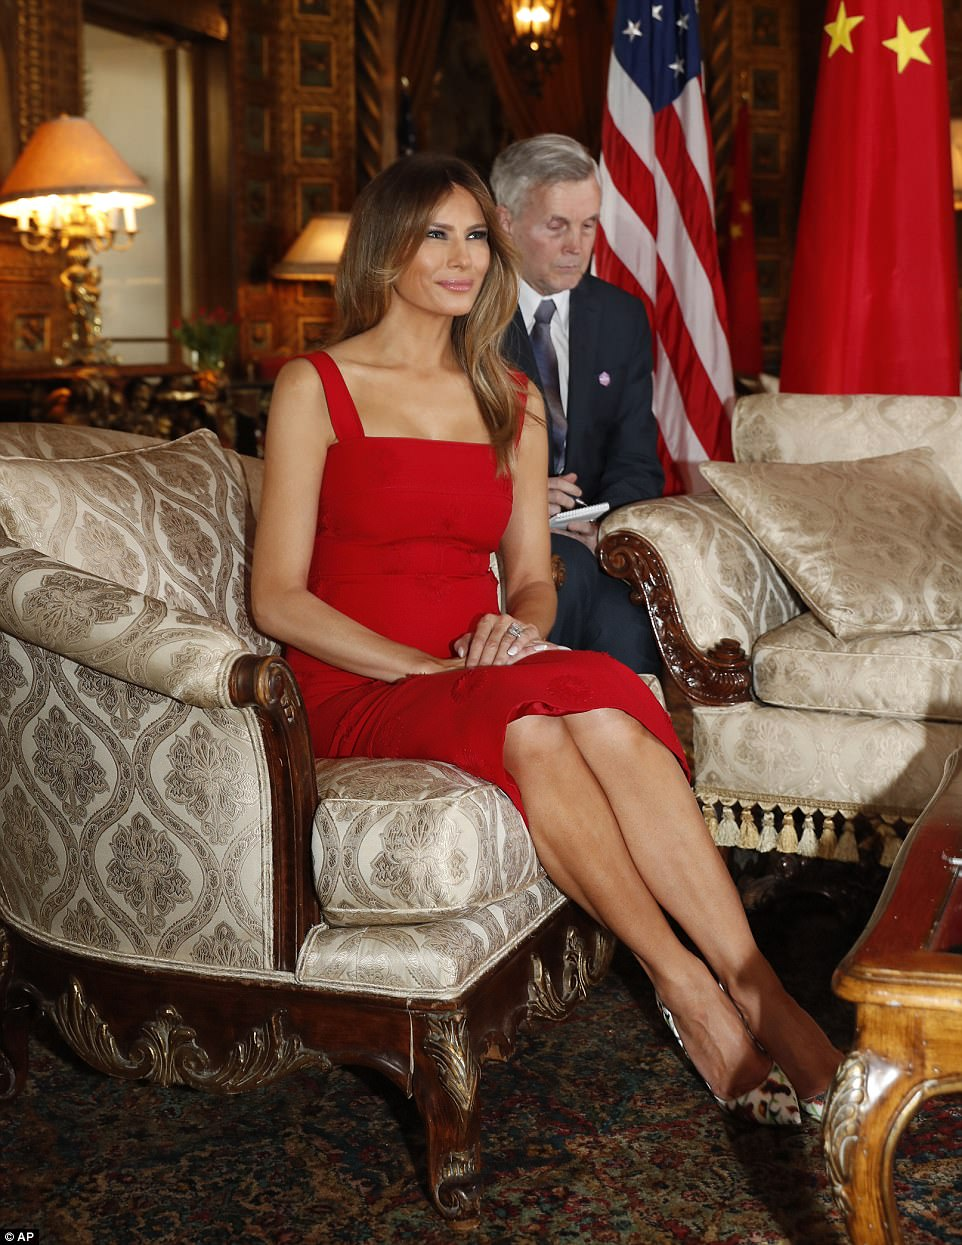 Pictured, Melania in a striking red tea-length dress just one day after she welcomed the King and Queen of Jordan at the White House